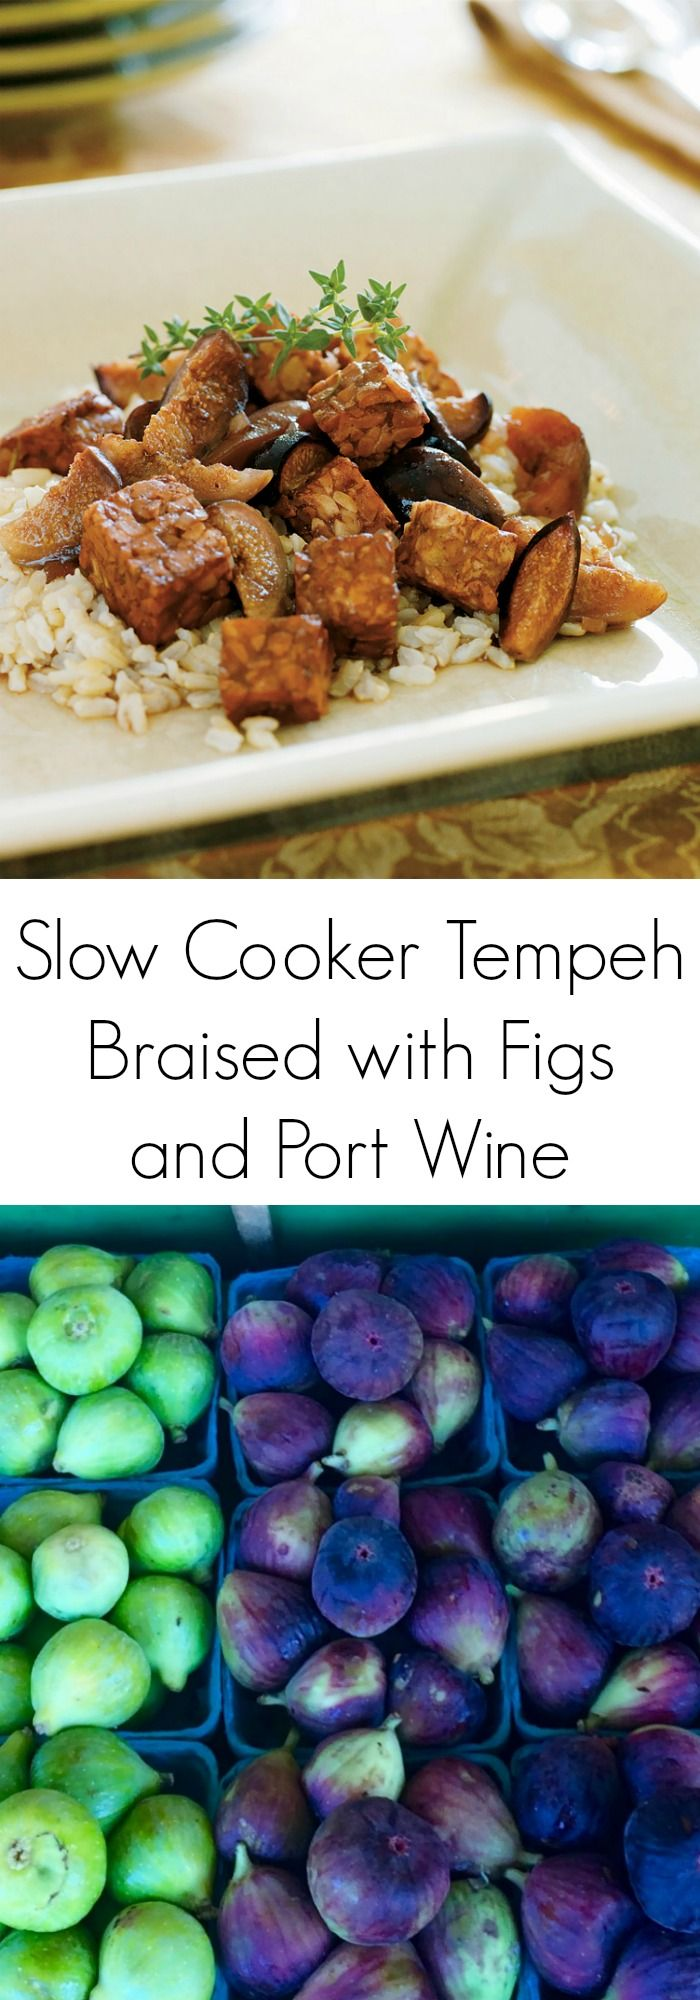 Slow Cooker Tempeh Braised with Figs and Port Wine - a super easy vegan dinner